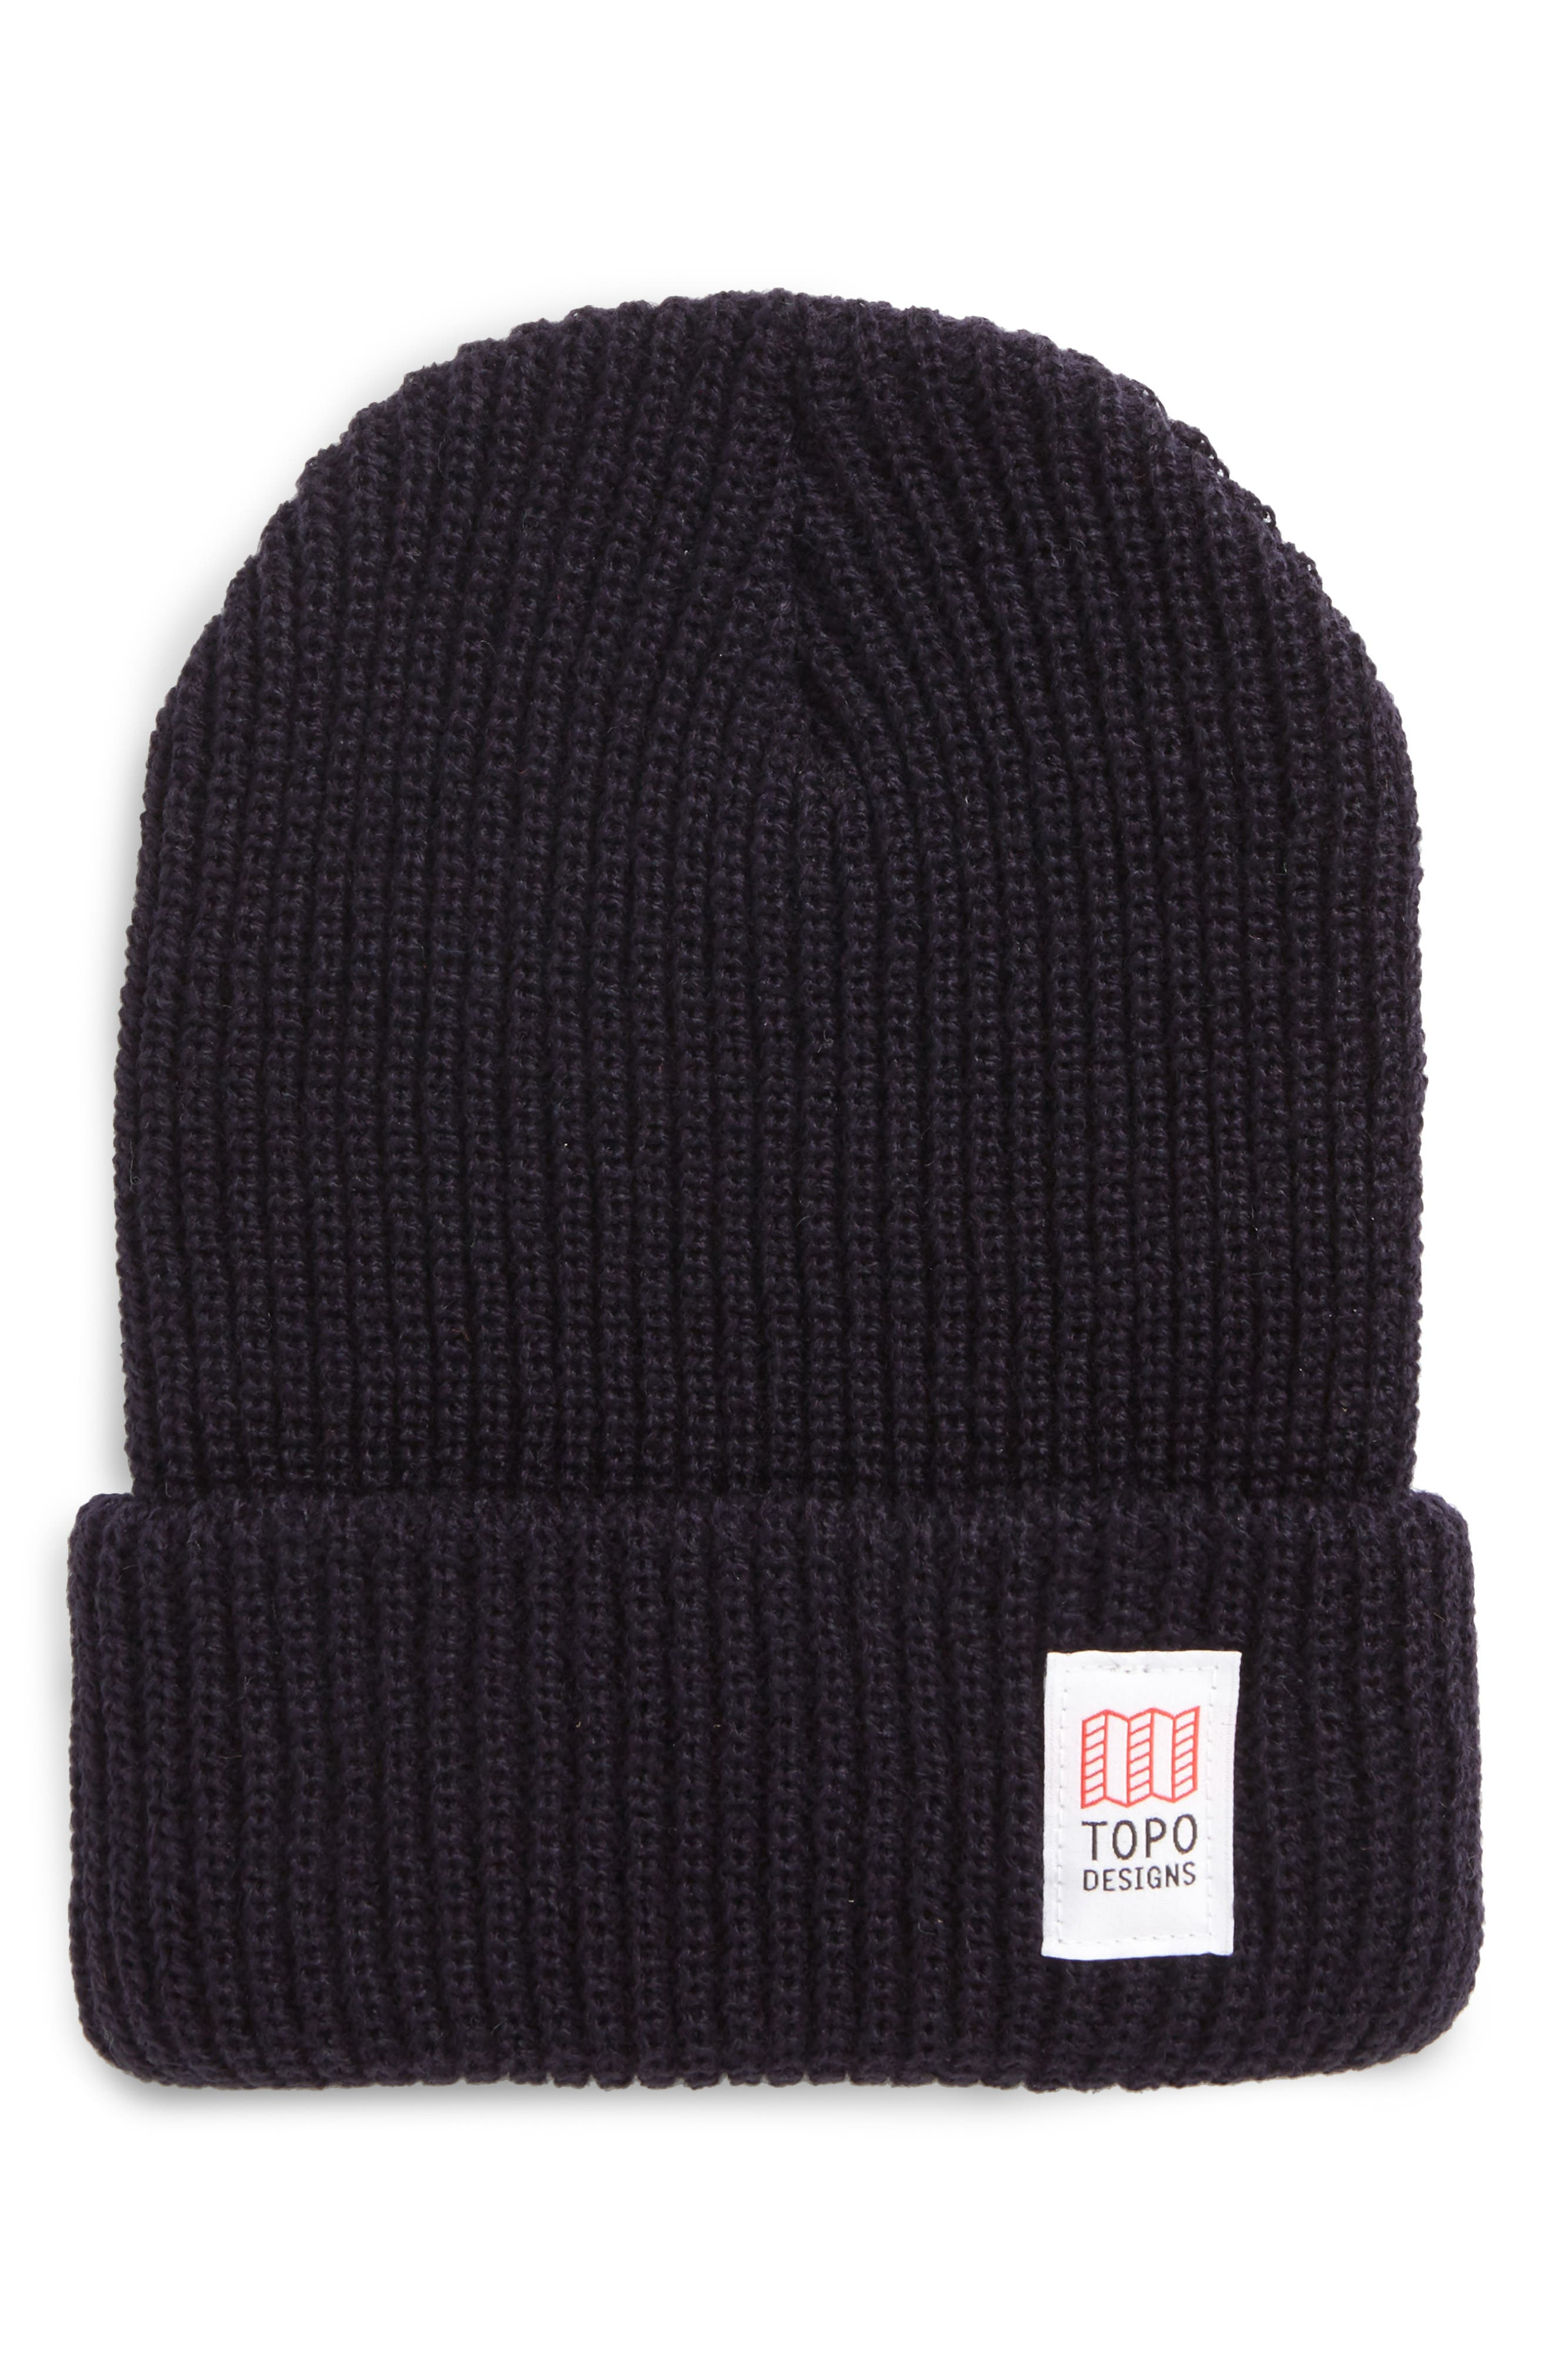 Topo Designers Heavyweight Knit Cap